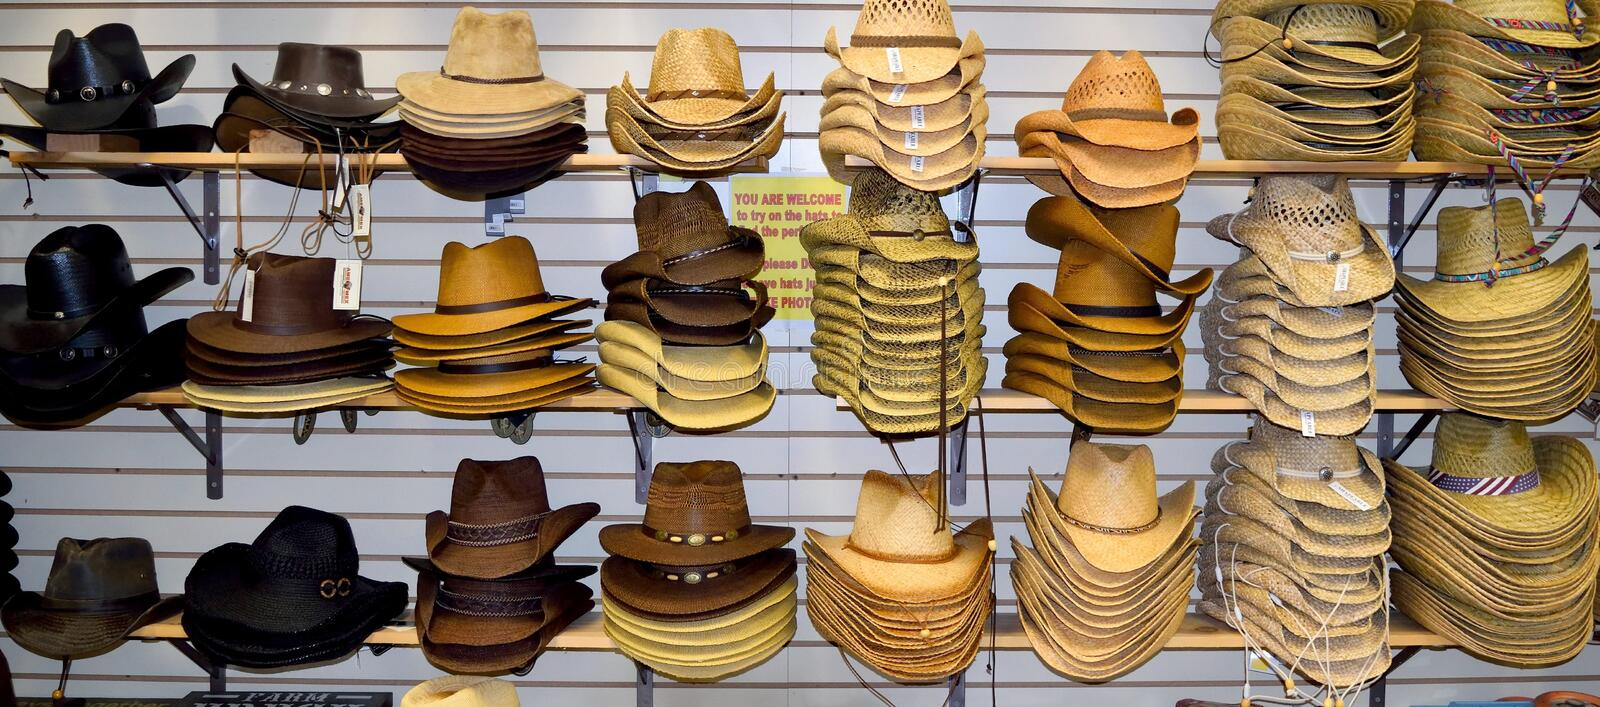 Cowboy Hats For Sale stockbild